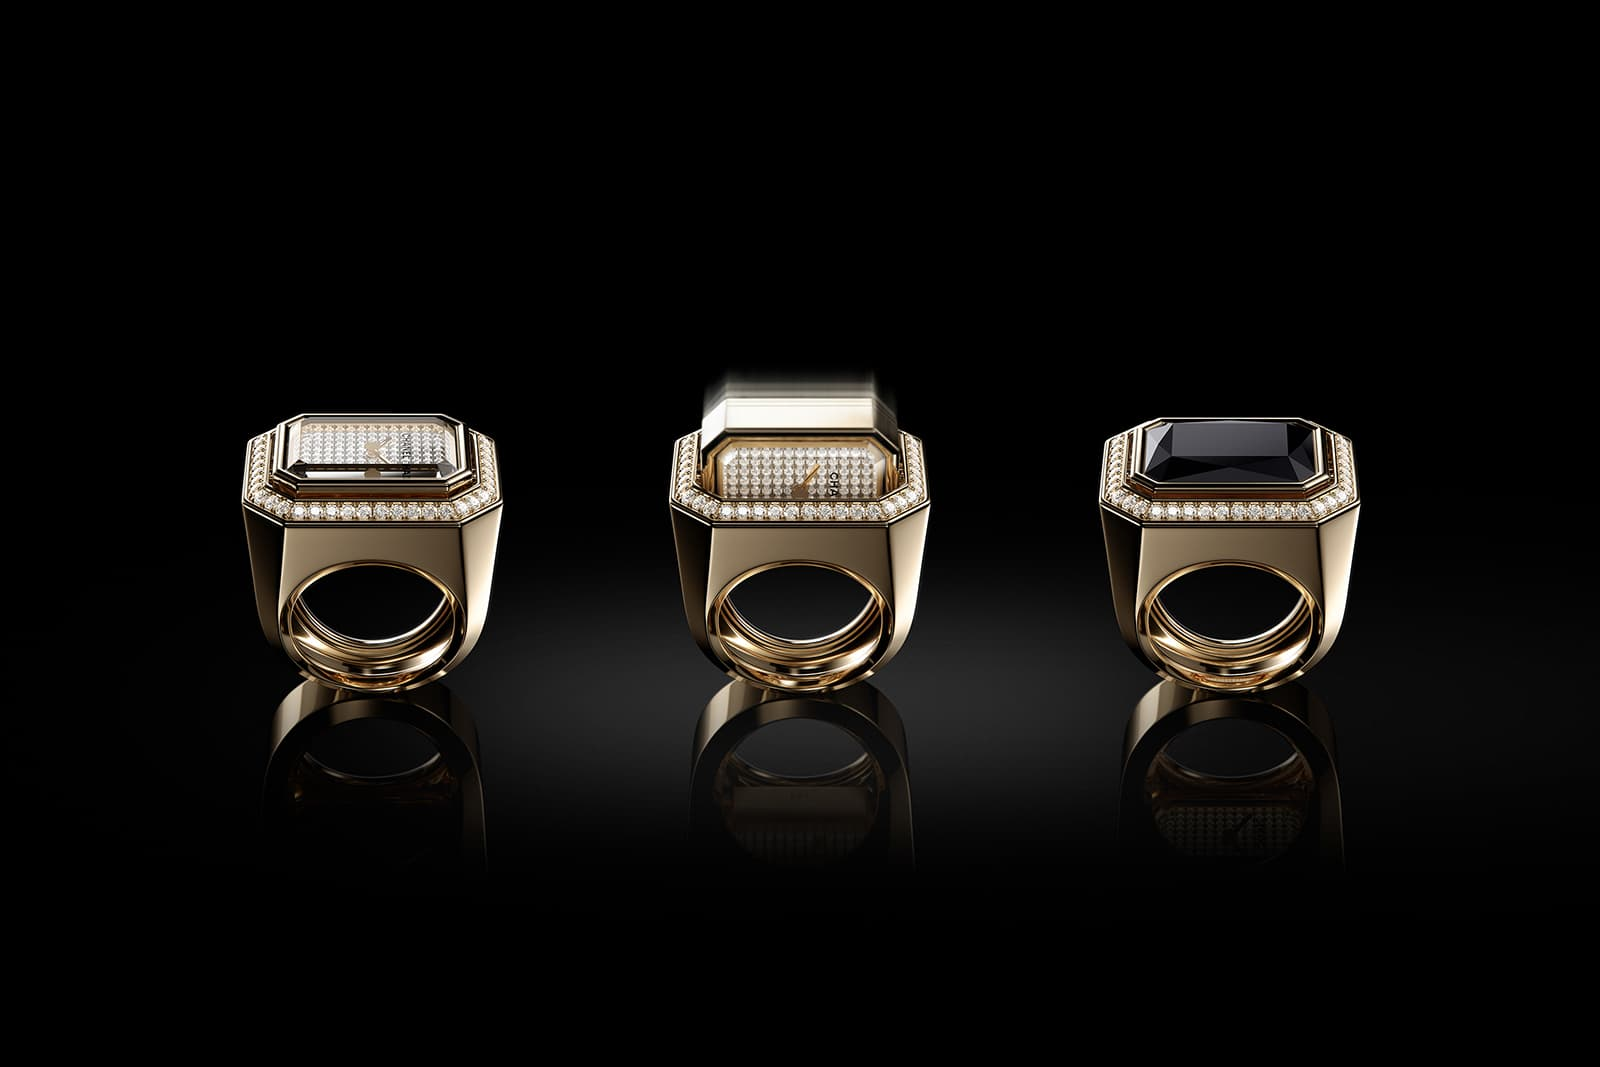 Chanel 'Premiere' collection 'Midnight in Vendome' watch ring with onyx and 1.06ct diamonds in 18k yellow gold